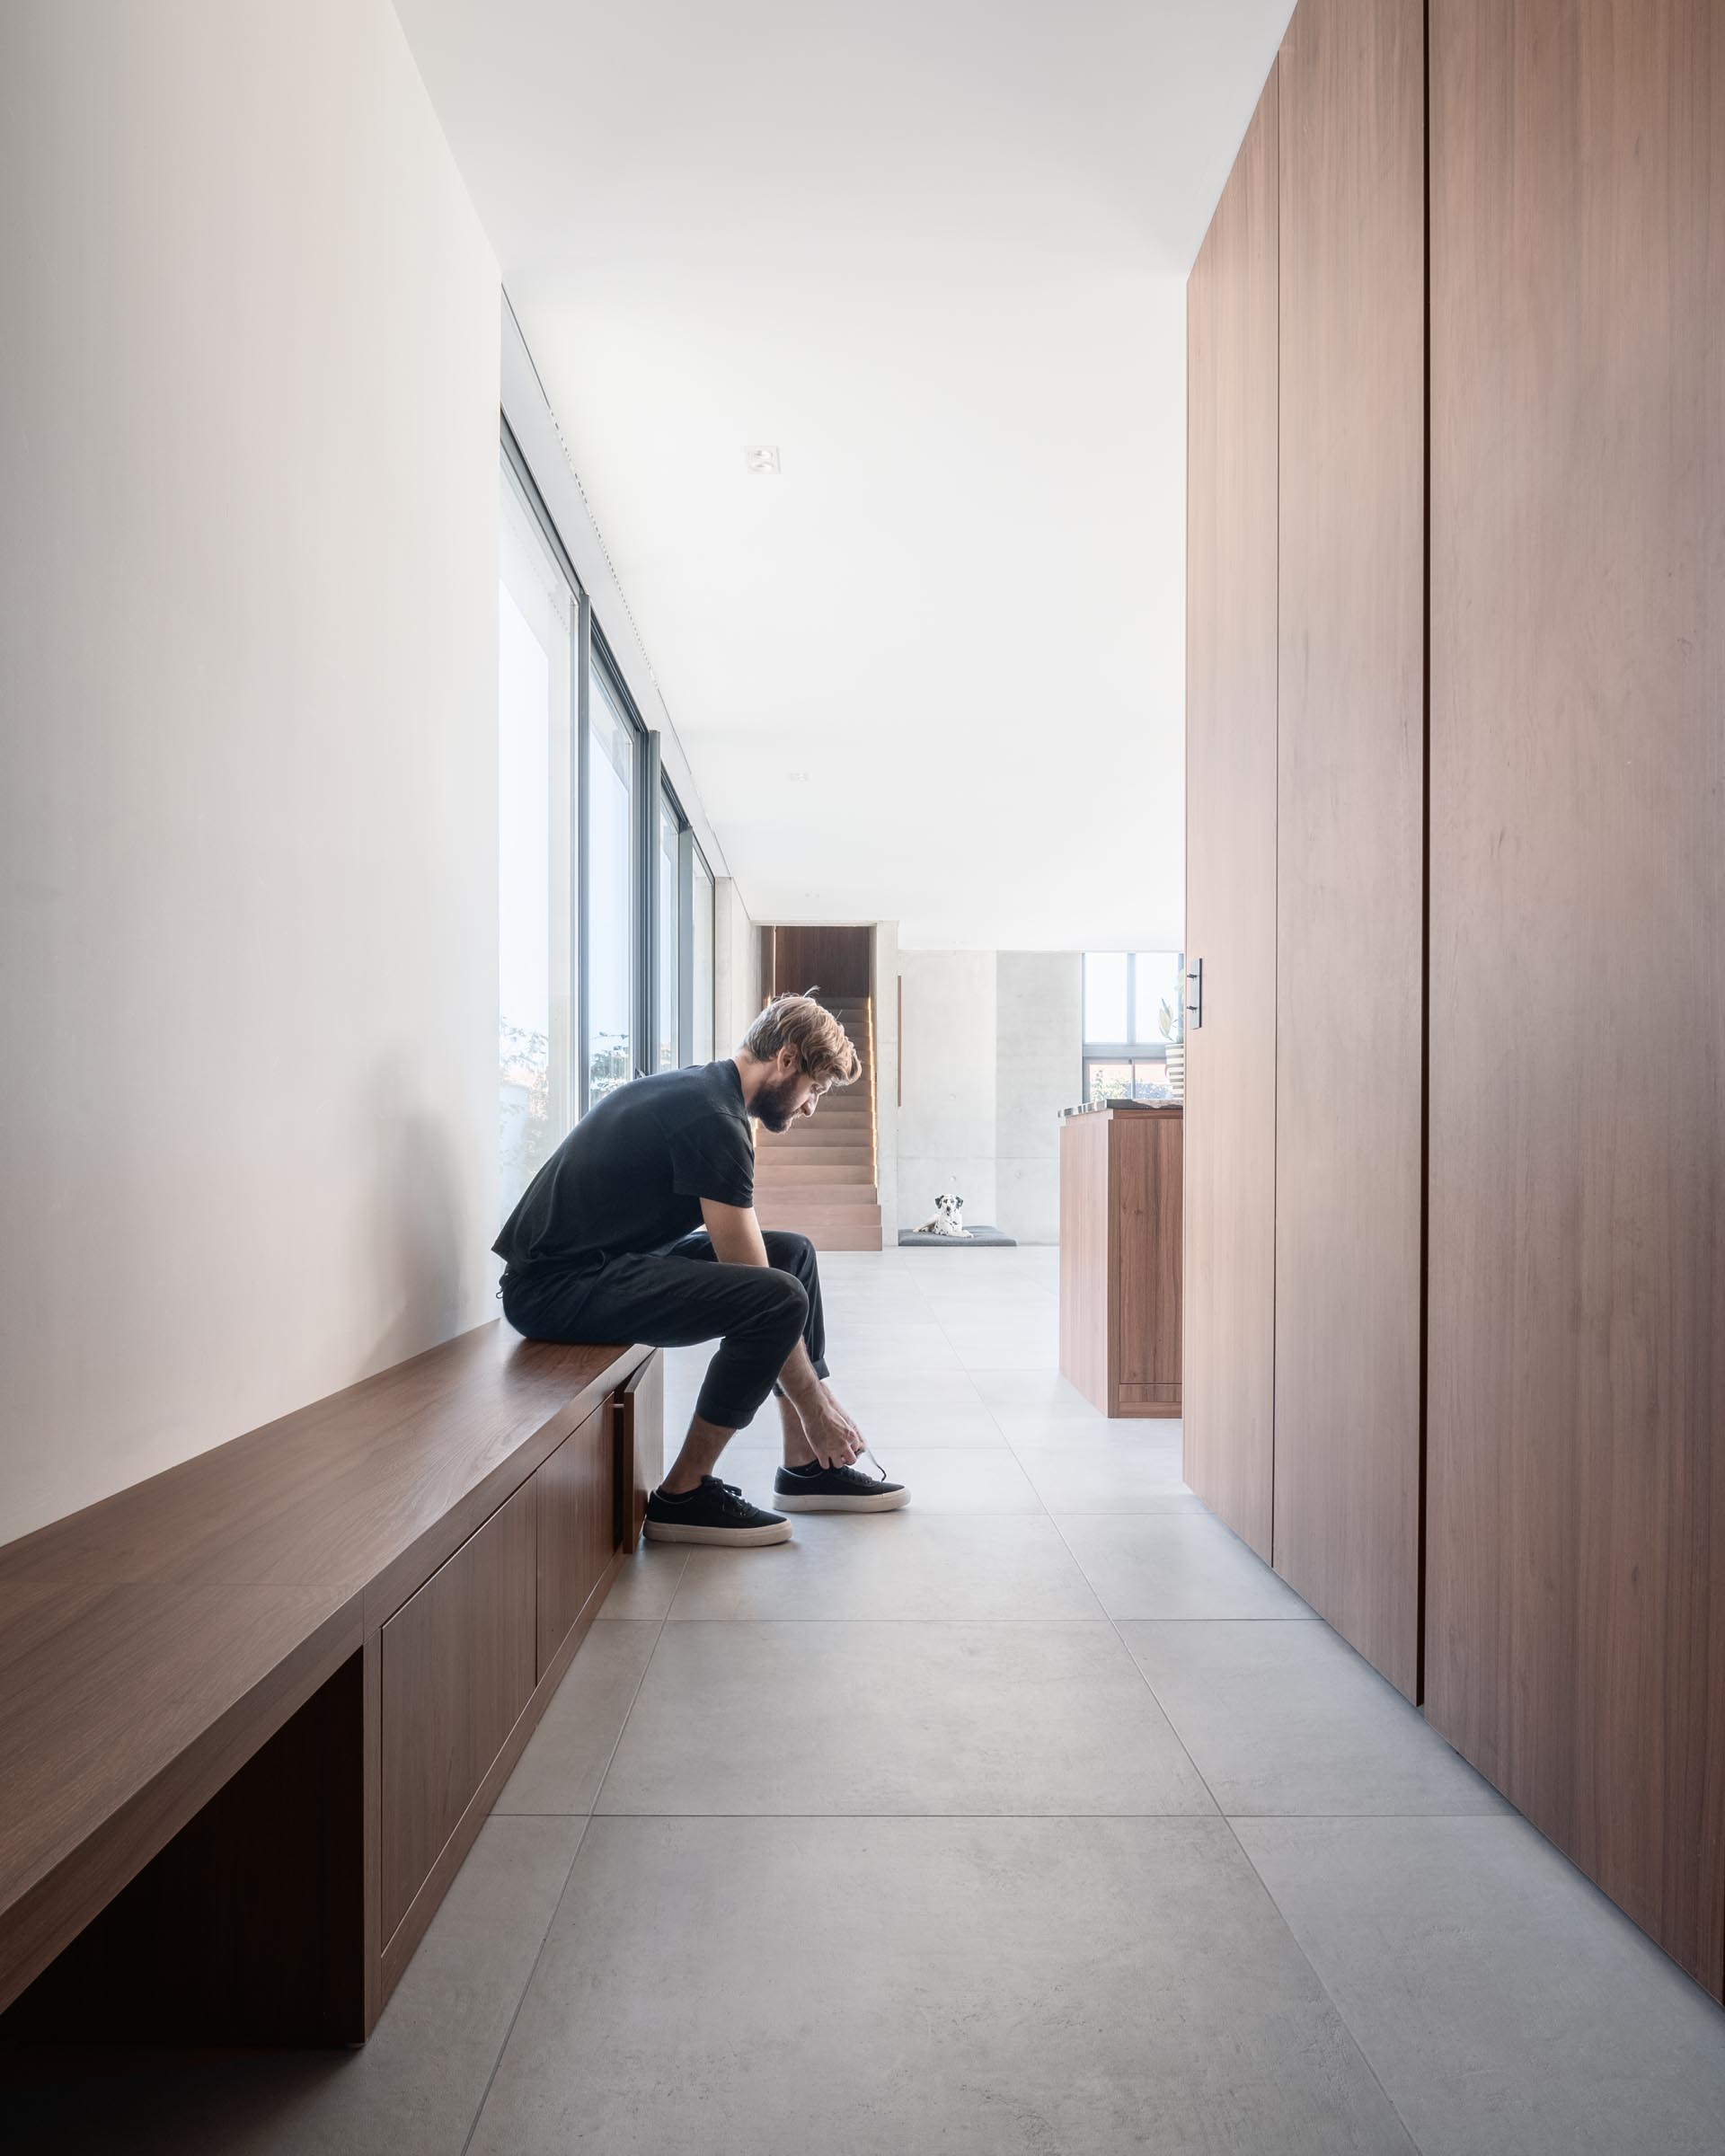 This modern entryway has a long wood bench, and on the opposite wall is a powder room and cabinets for storing jackets.